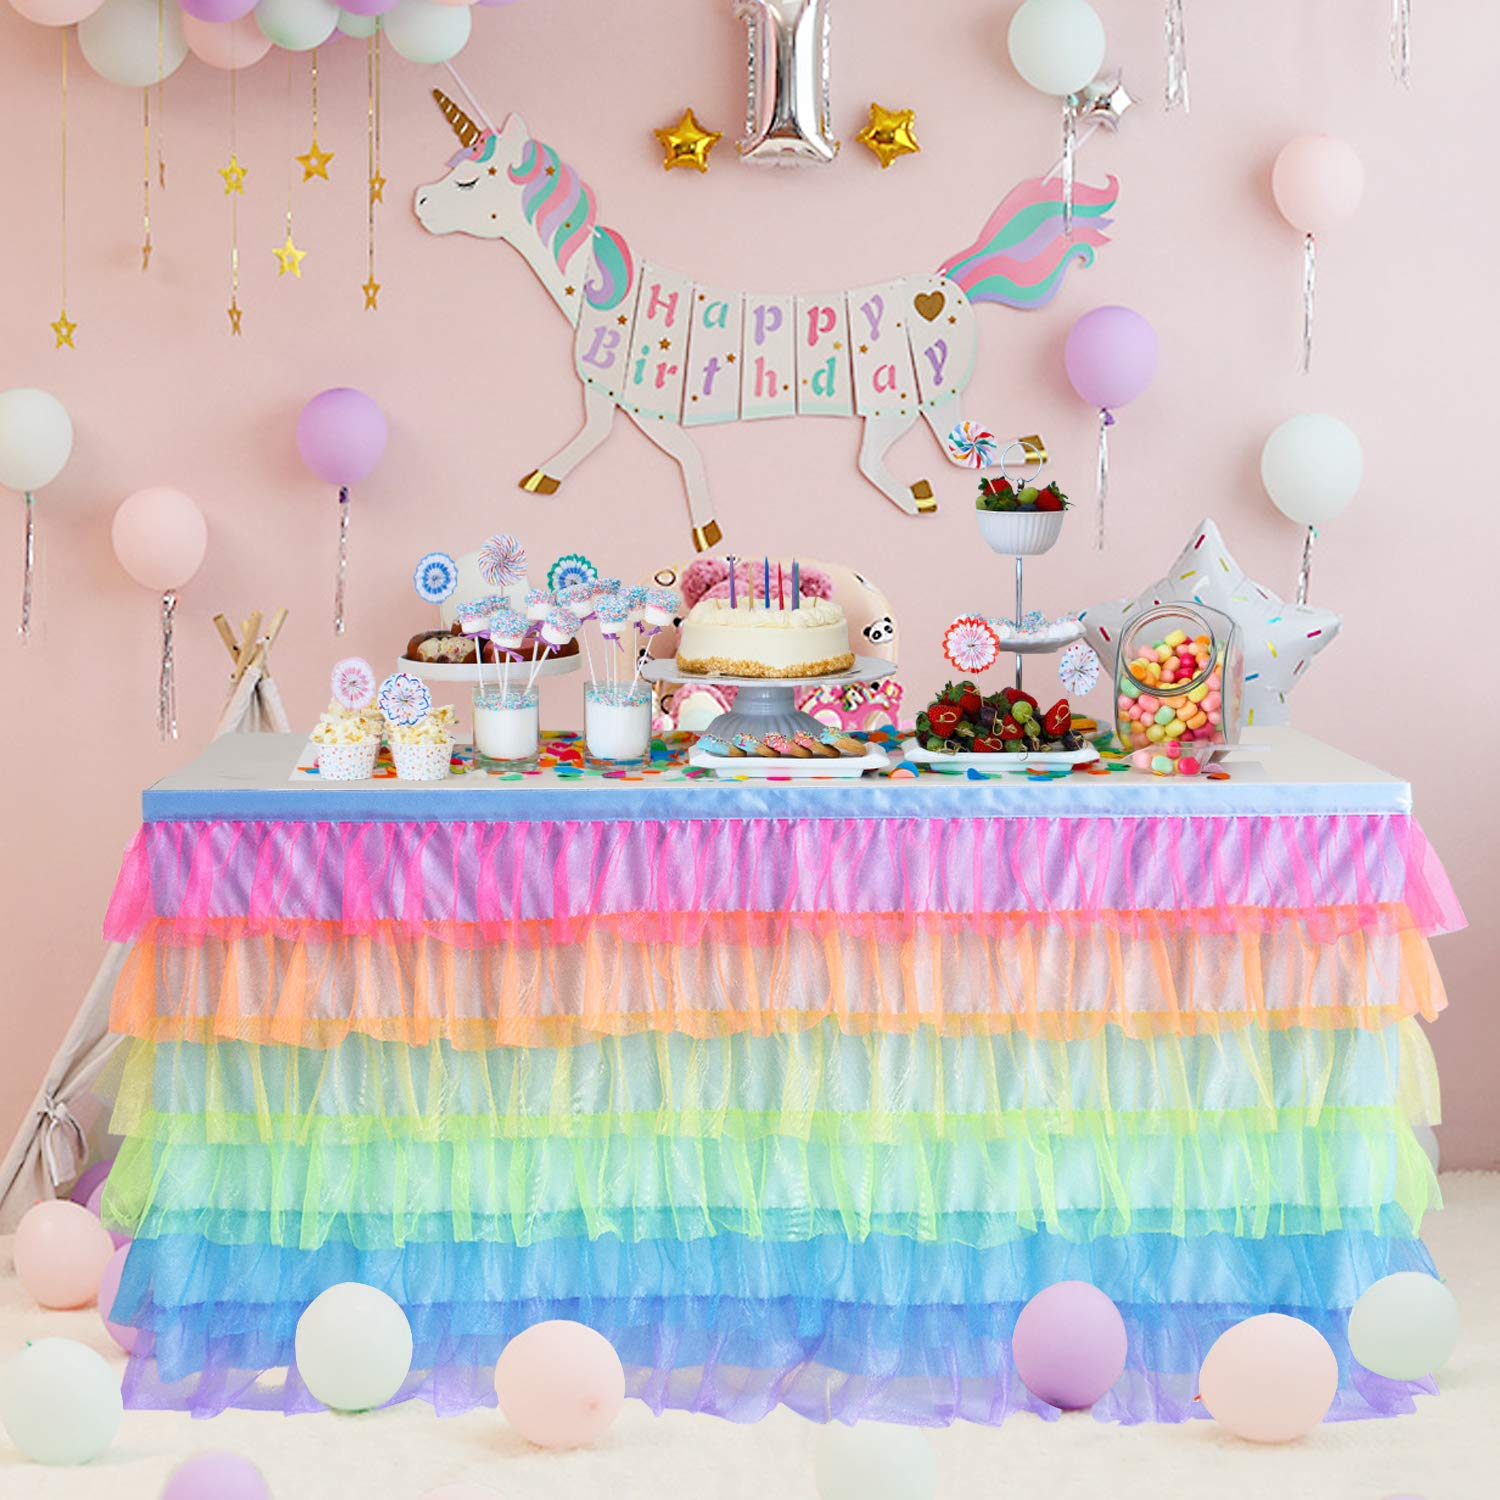 Rainbow Tulle Table Skirt 6ft Unicorn Table Skirt Tutu Table Cloth for Birthday Party Baby Shower Decorations Girl by Besutolife